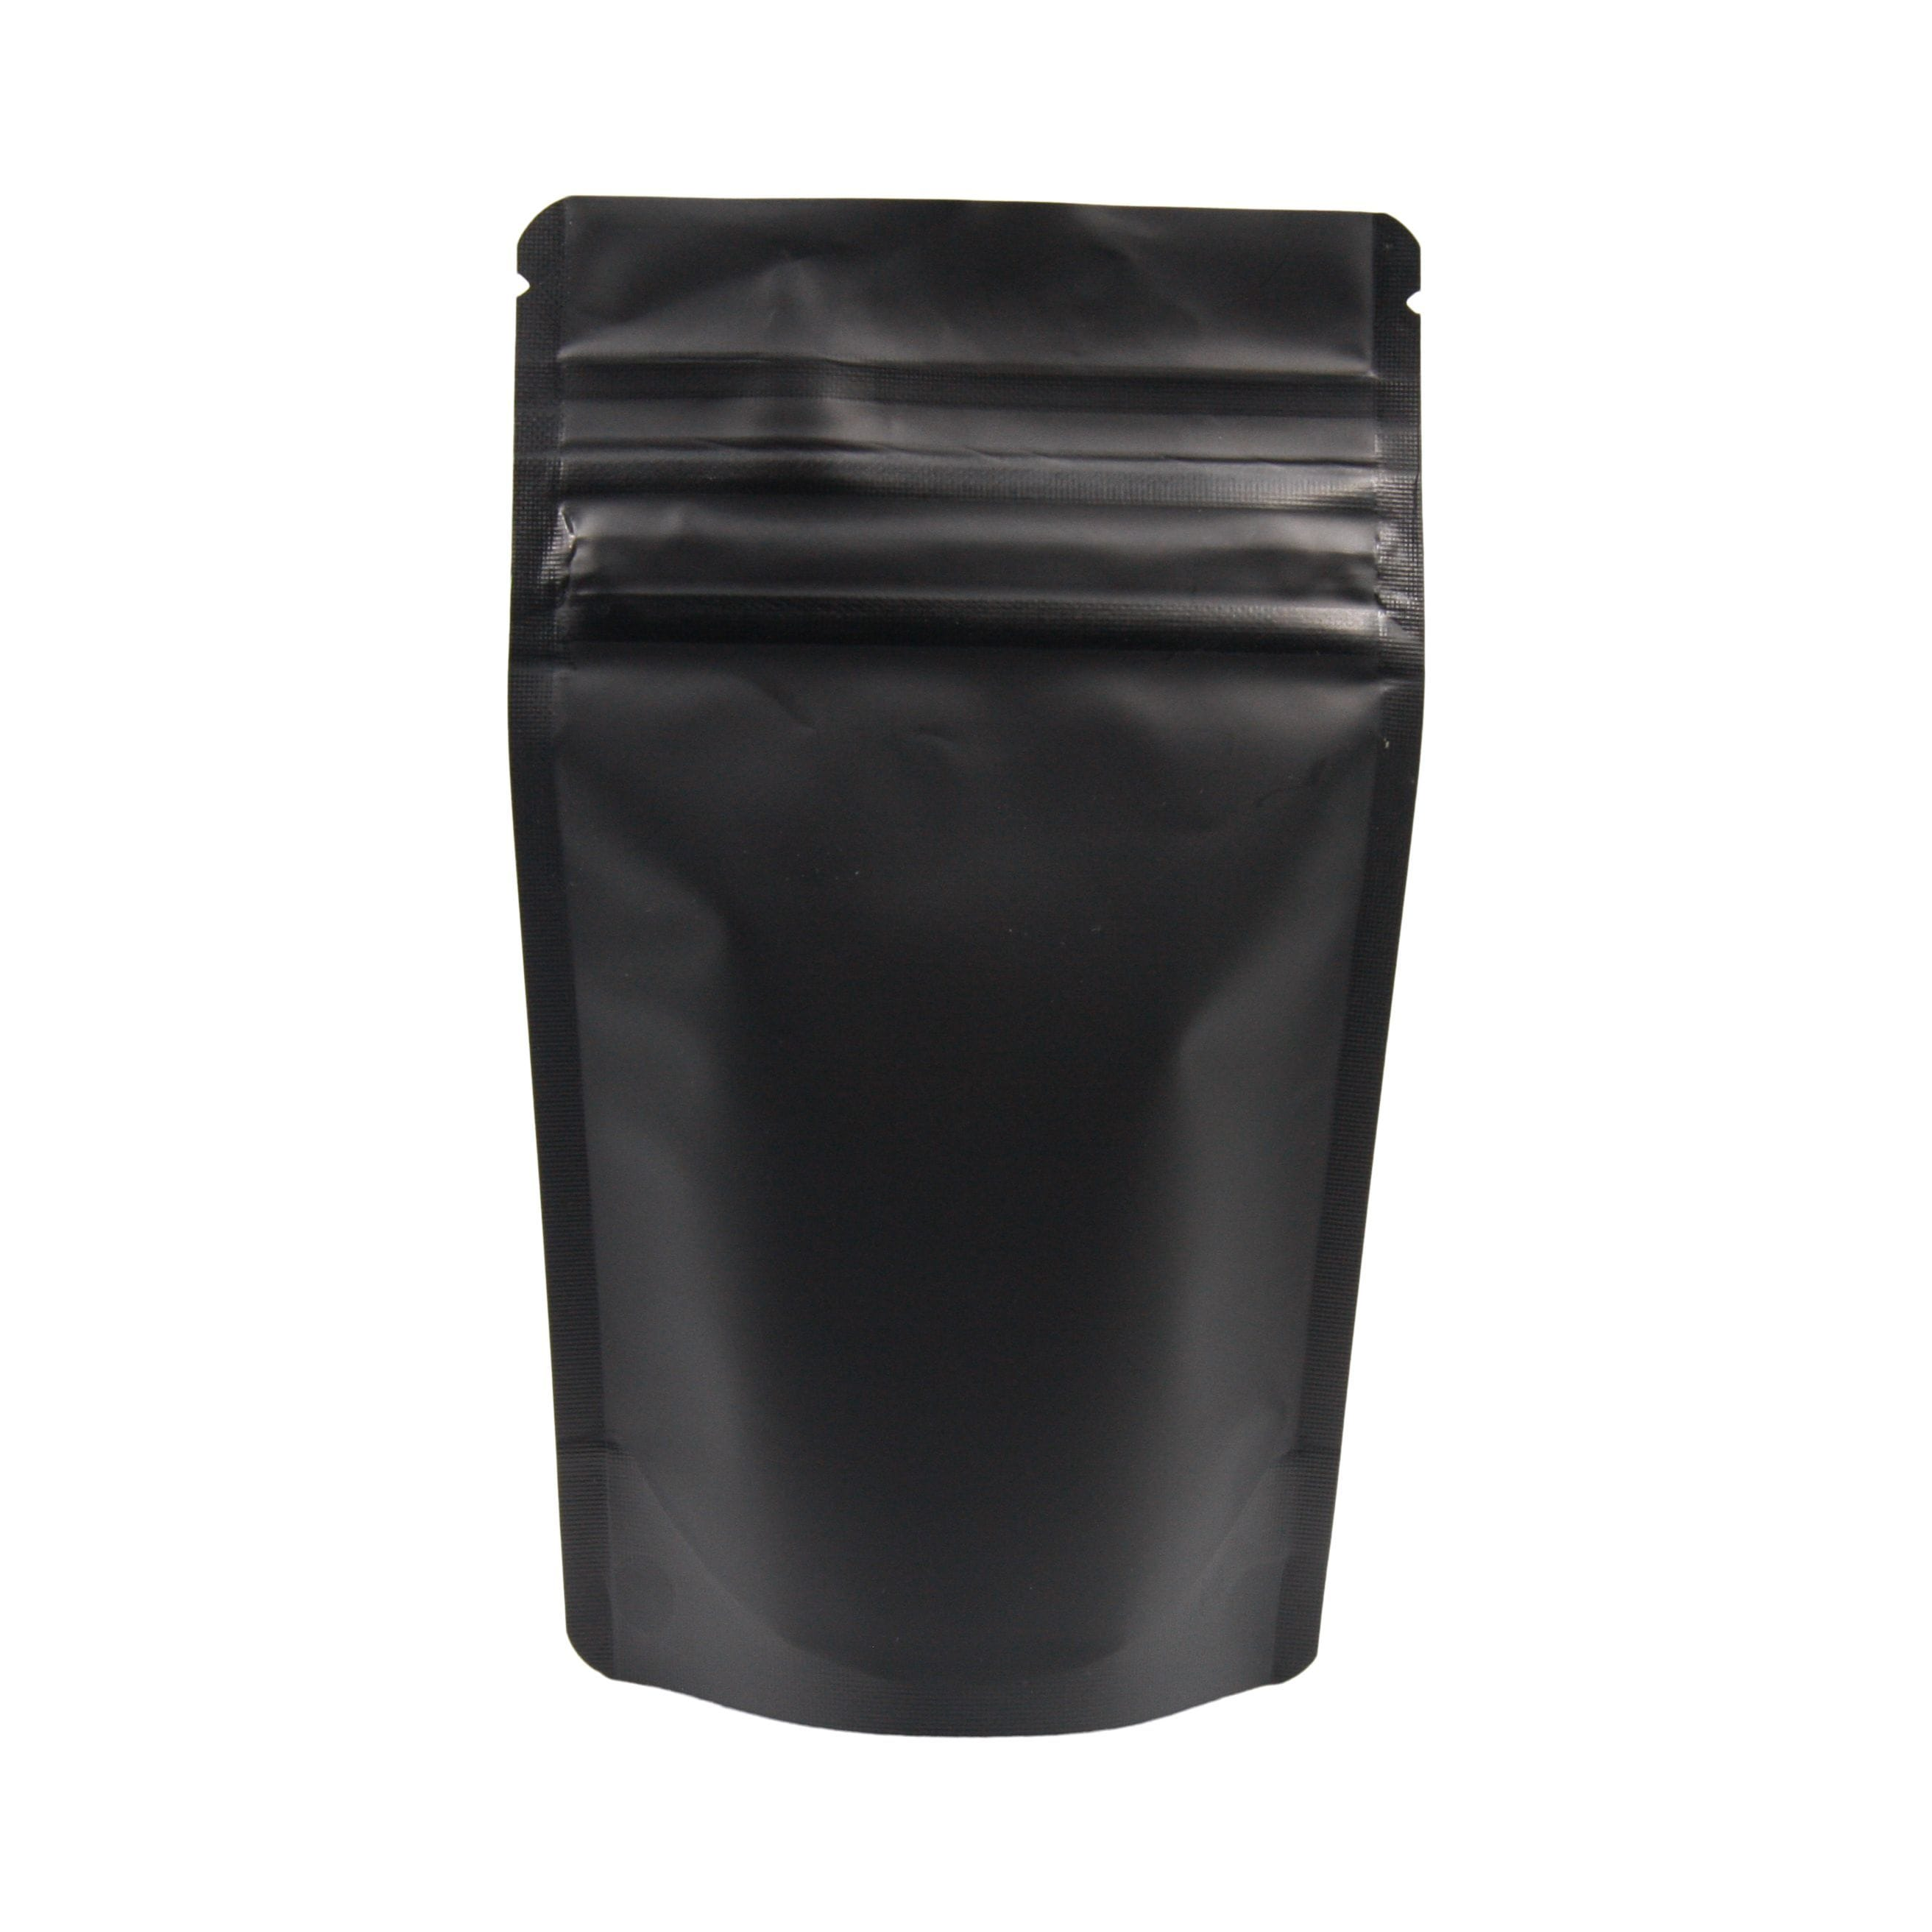 Bag King Child-Resistant Opaque Mylar Bag (1/8th oz)